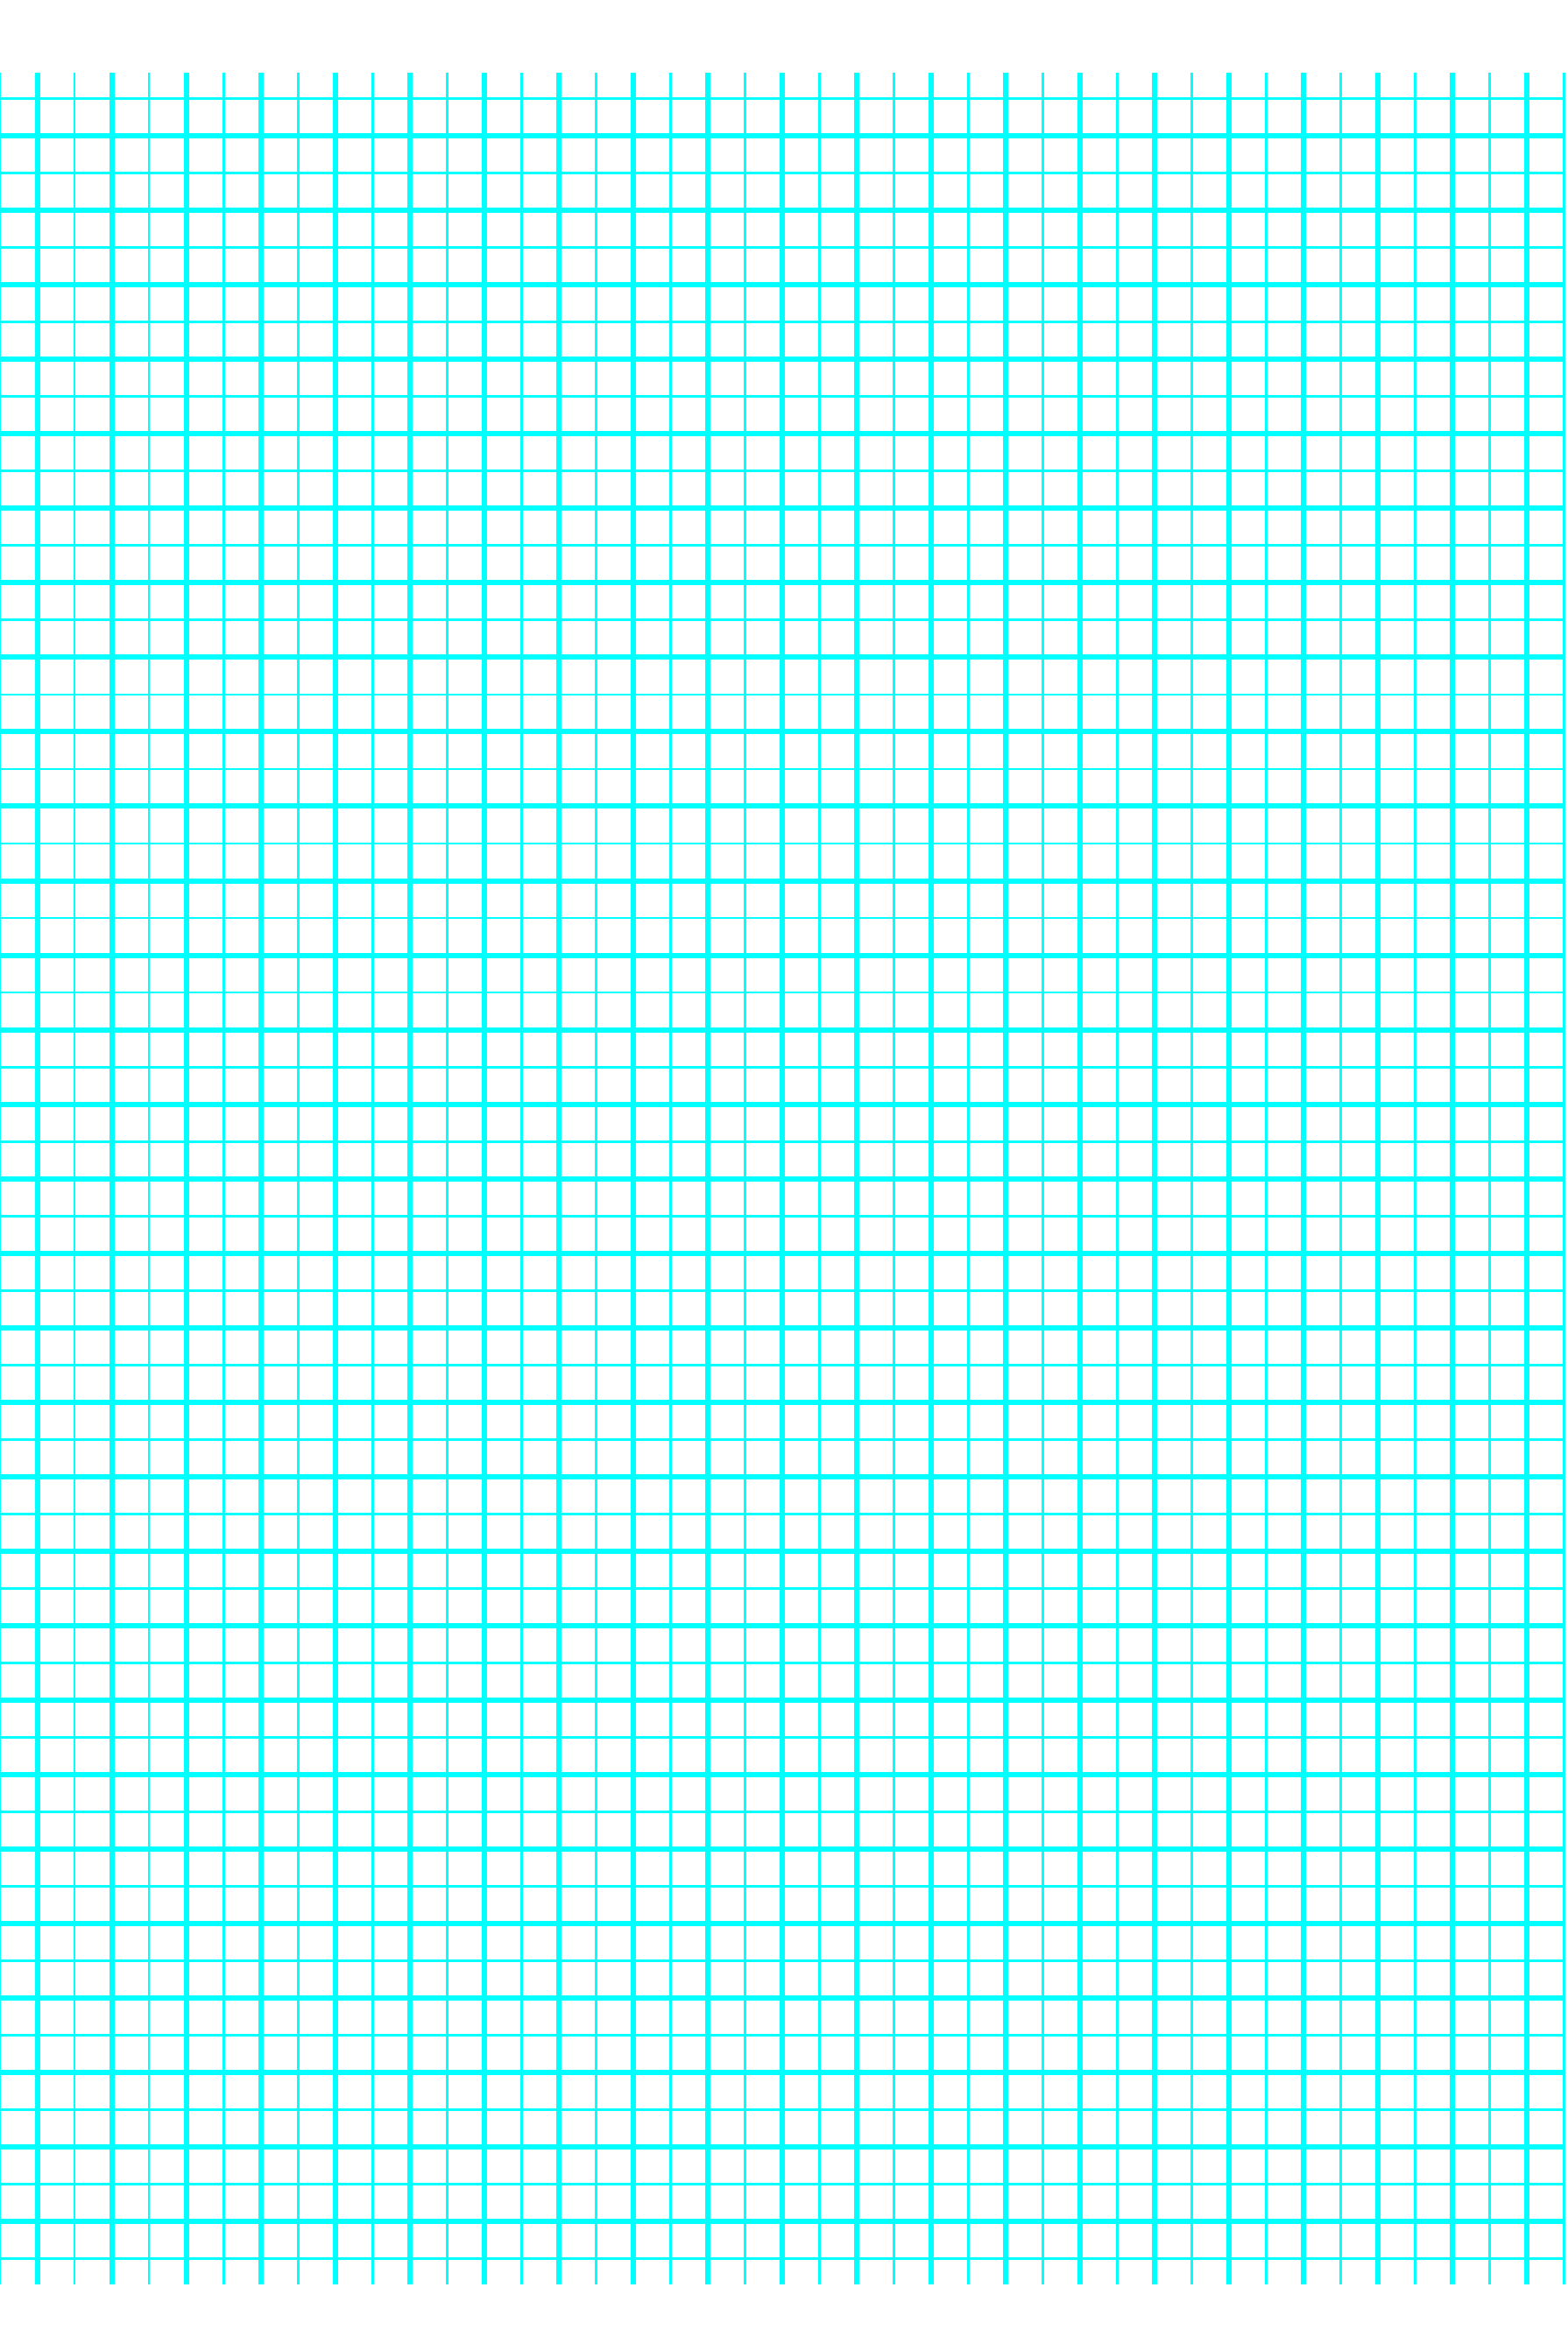 1 Line Per 5 Mm Graph Paper On A4 Paper Centimeter Free